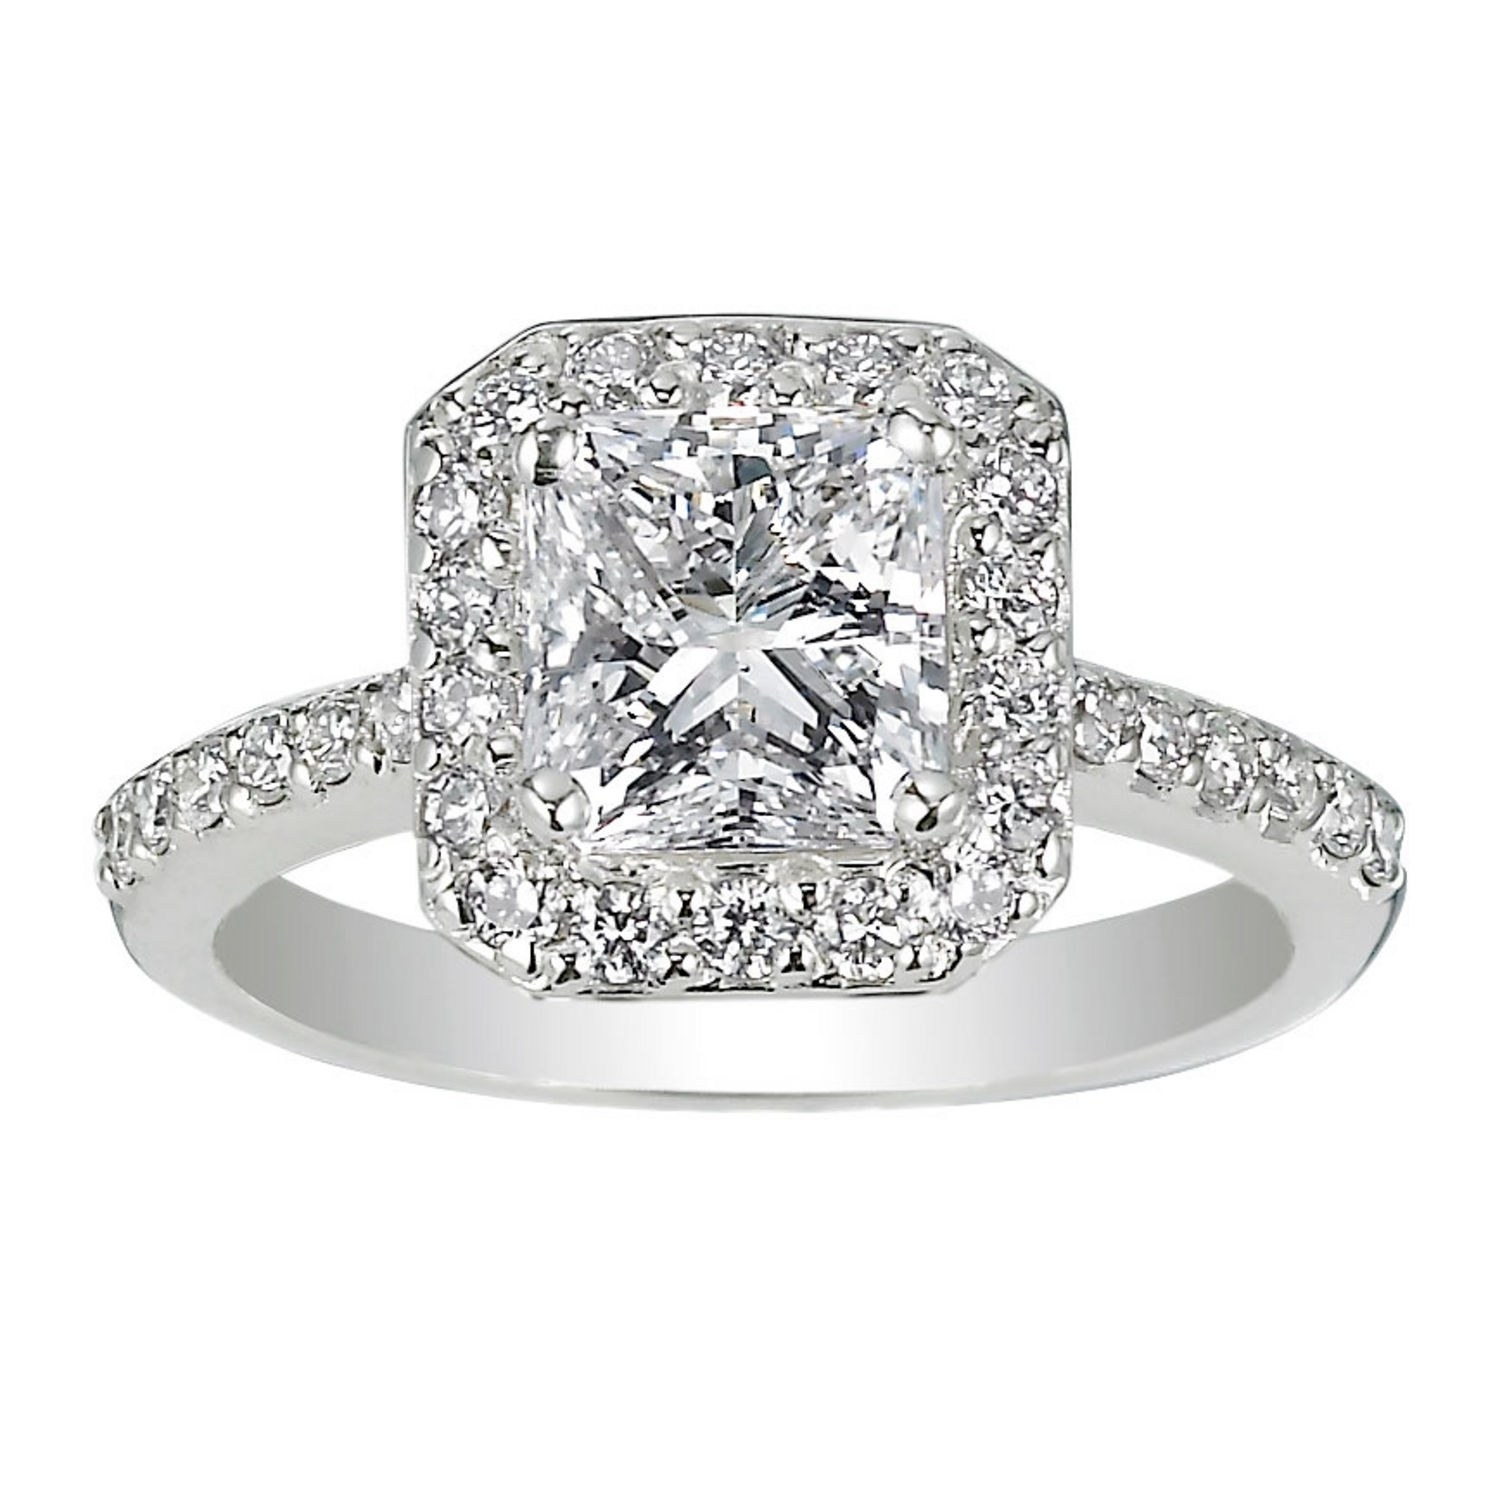 62 Diamond Engagement Rings Under $5,000 | Glamour With Most Popular Diamond Octagon Frame Vintage Style Engagement Rings In 14K White Gold (Gallery 7 of 15)